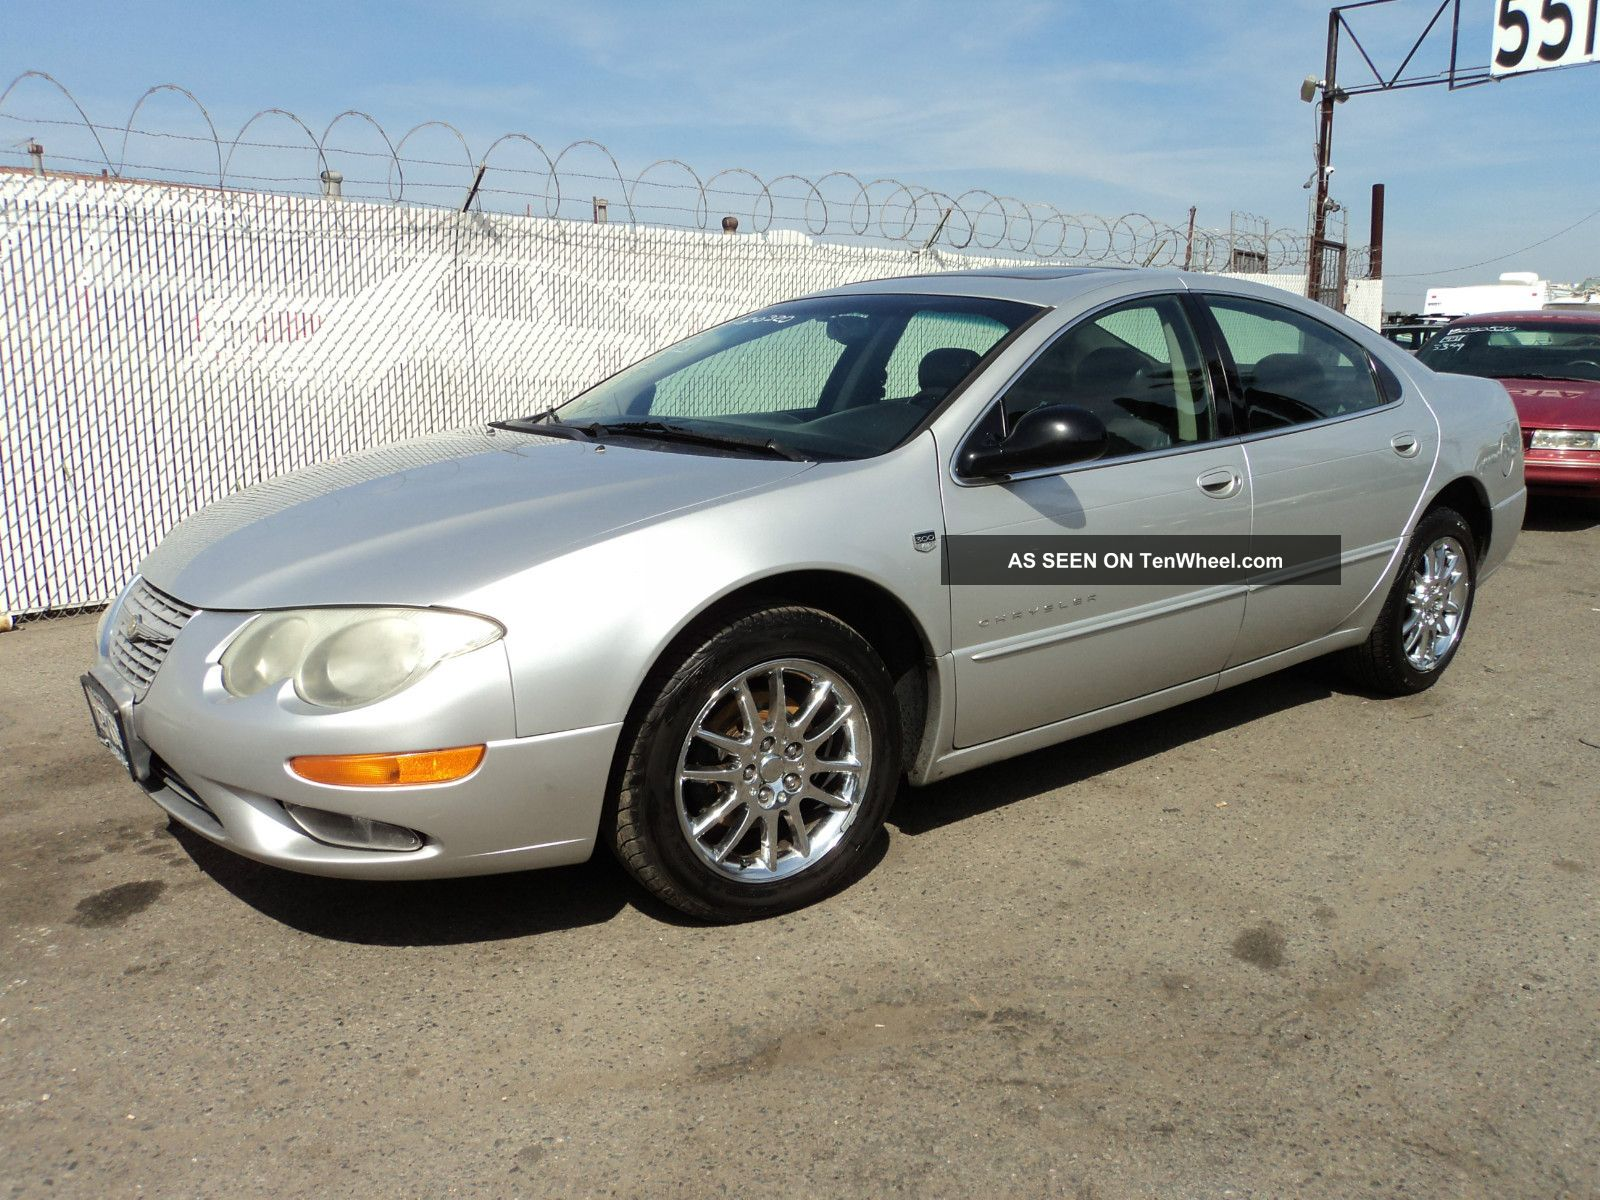 hight resolution of 2001 chrysler 300m base sedan 4 door 3 5l rh tenwheel com acura 3 5l engine